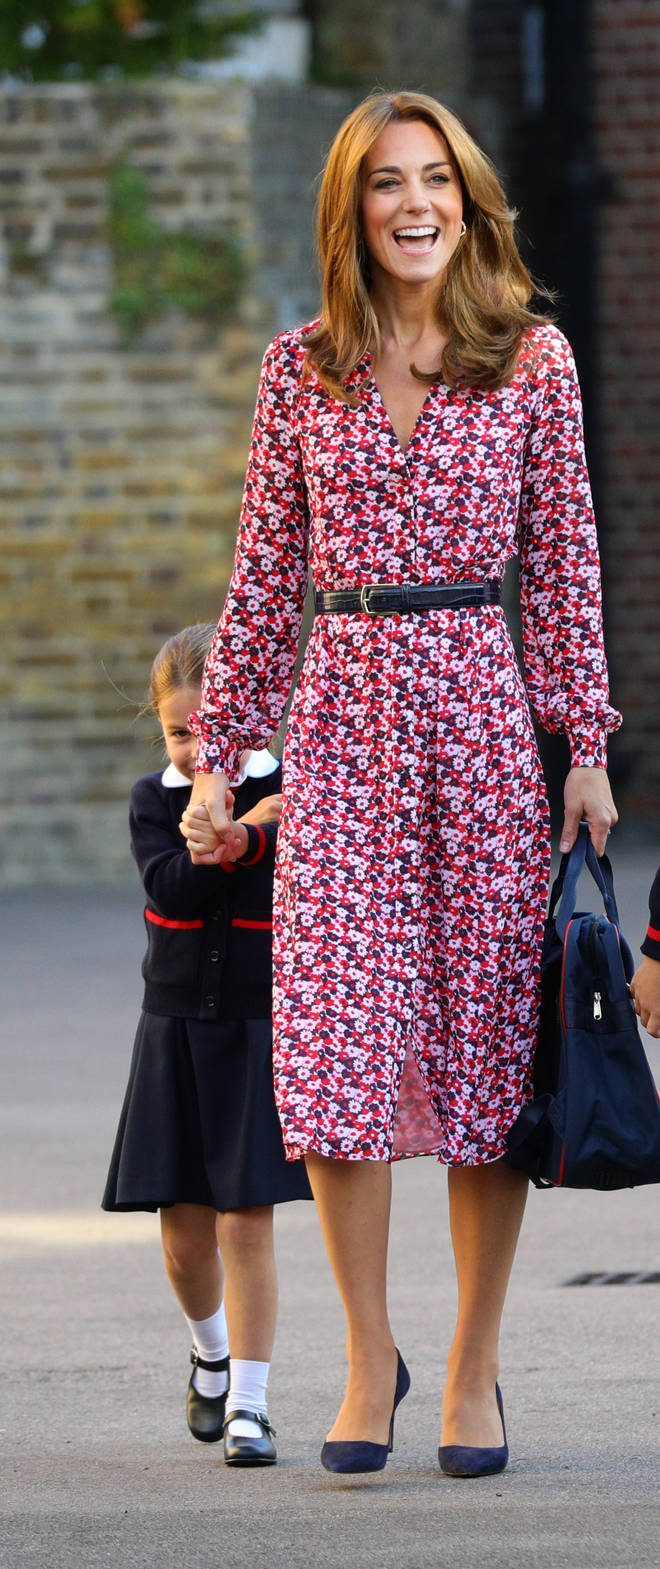 Judi also revealed that Kate and William's approach to their children revealed their true parenting style